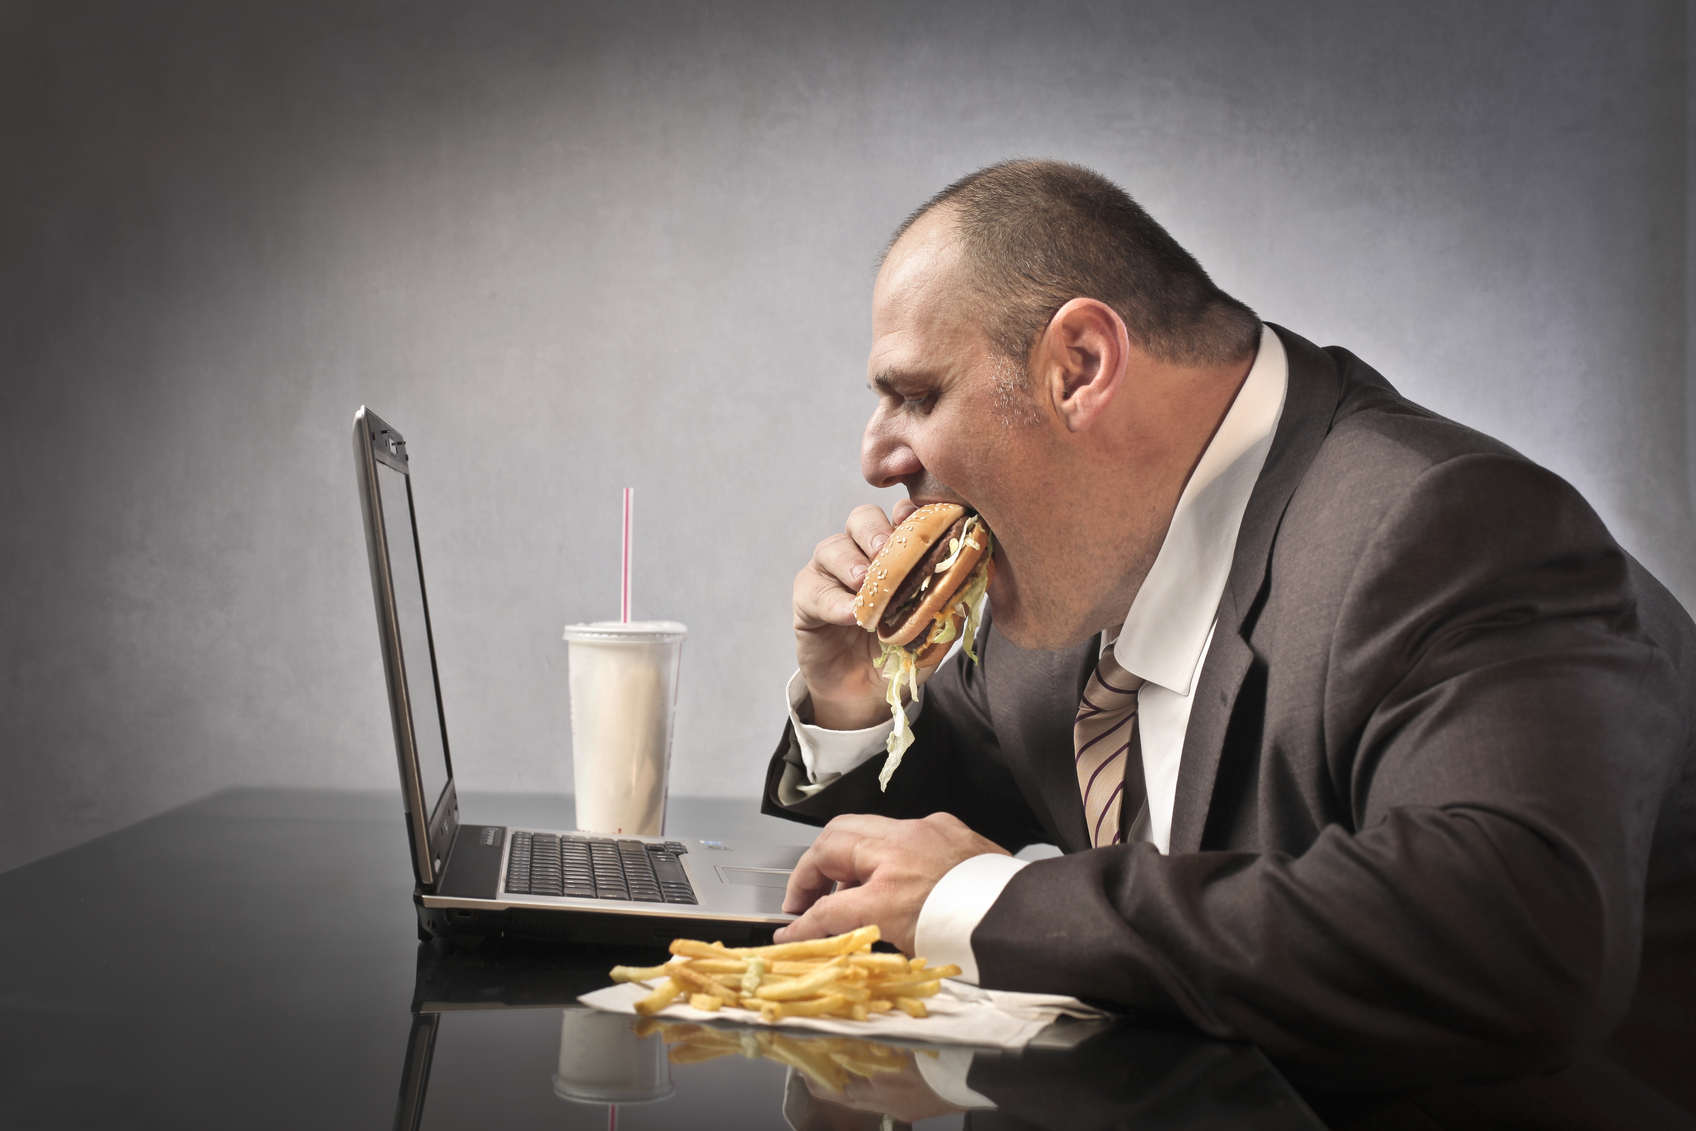 Fat businessman eating junk food in front of a laptop